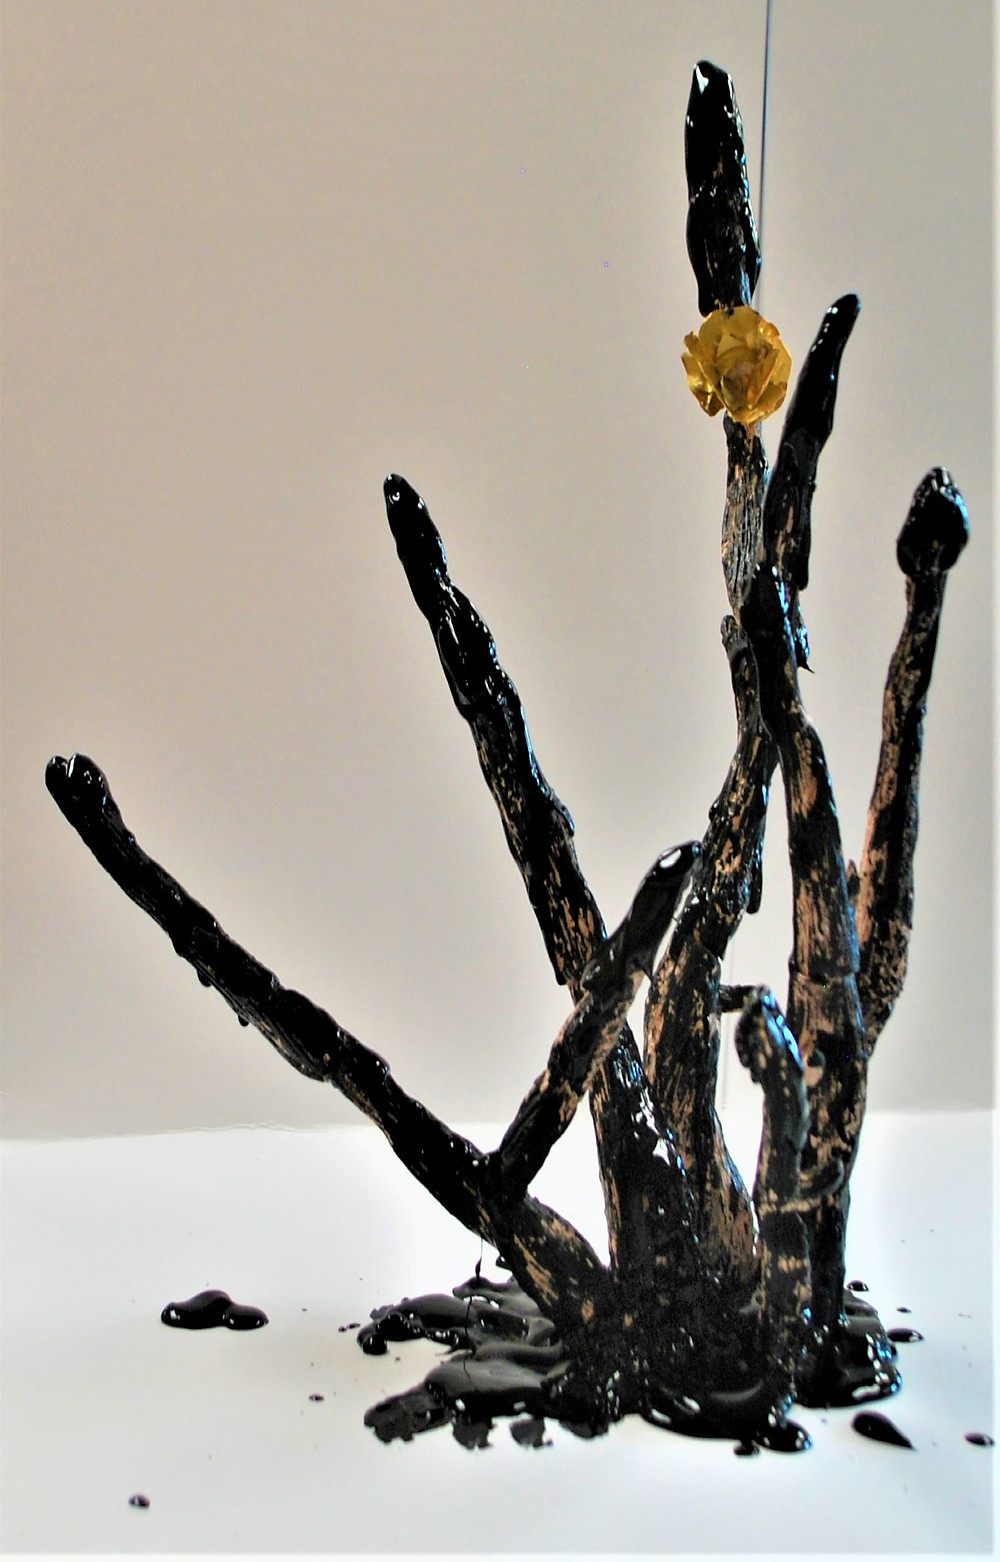 sculpture made with fired clay, dry and wet (dripping) acrylic paint.